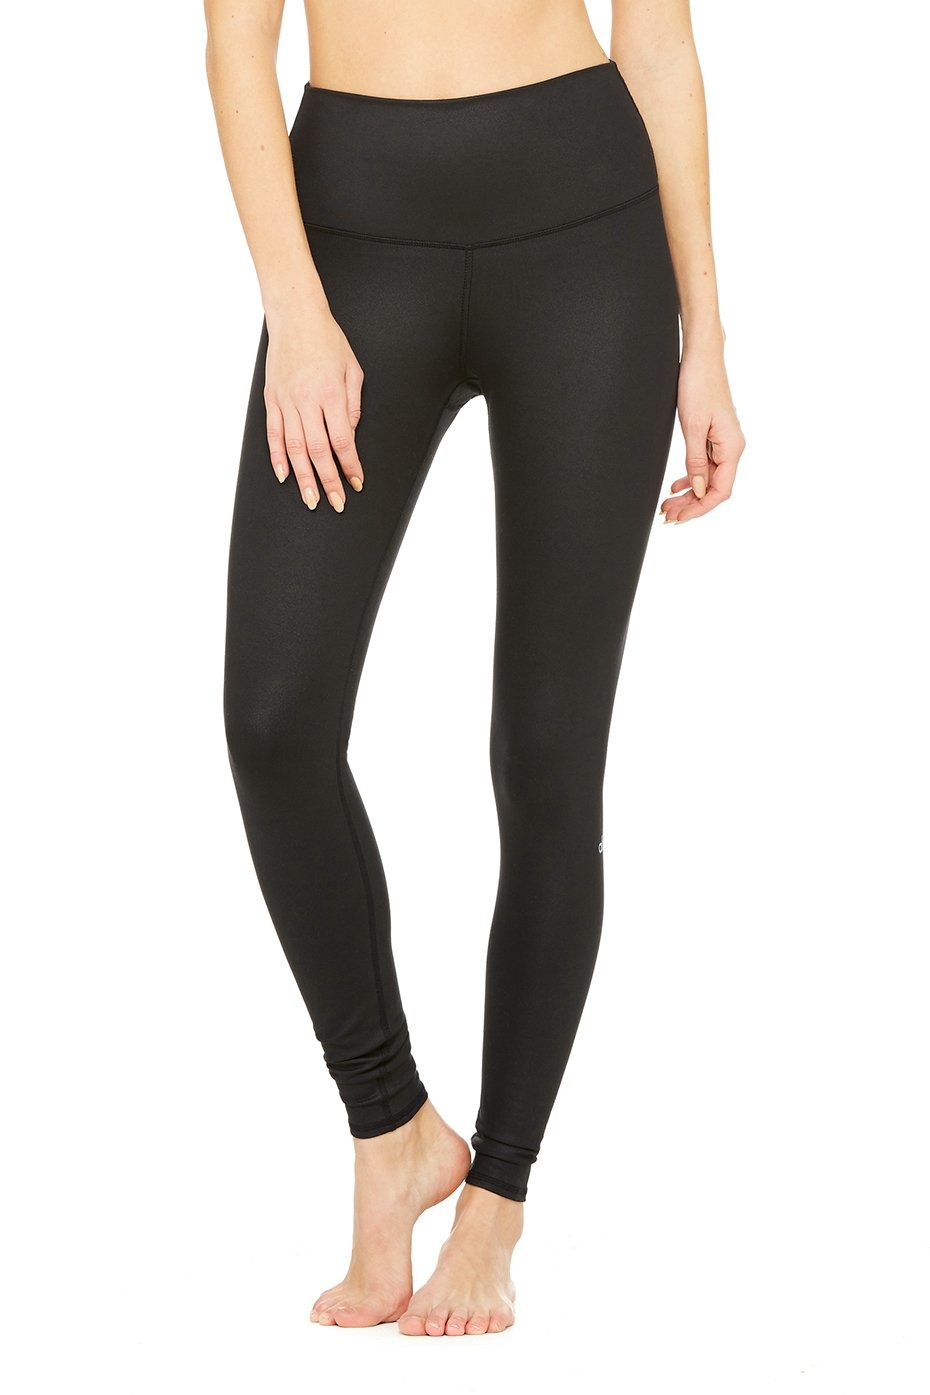 HW Airbrush Legging Black